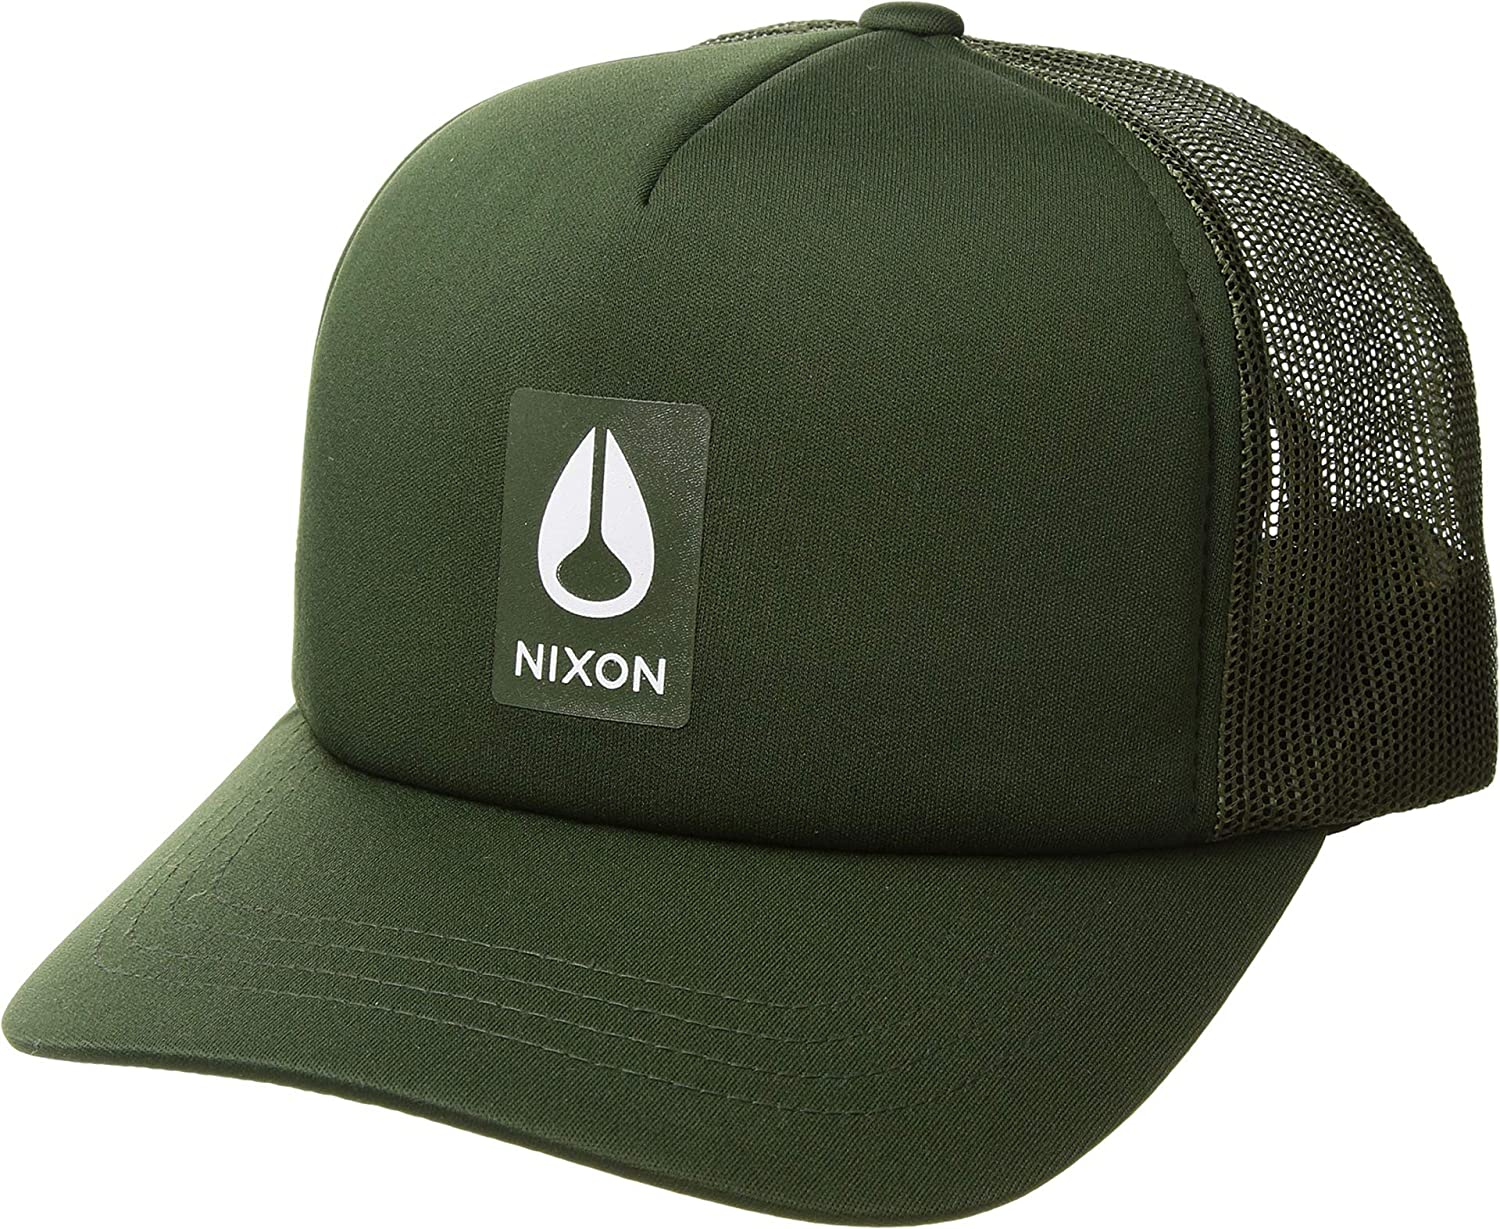 3233b9c33b5 Amazon.com  NIXON Men s Badge Foam Trucker Hat Dark Olive One Size  Clothing